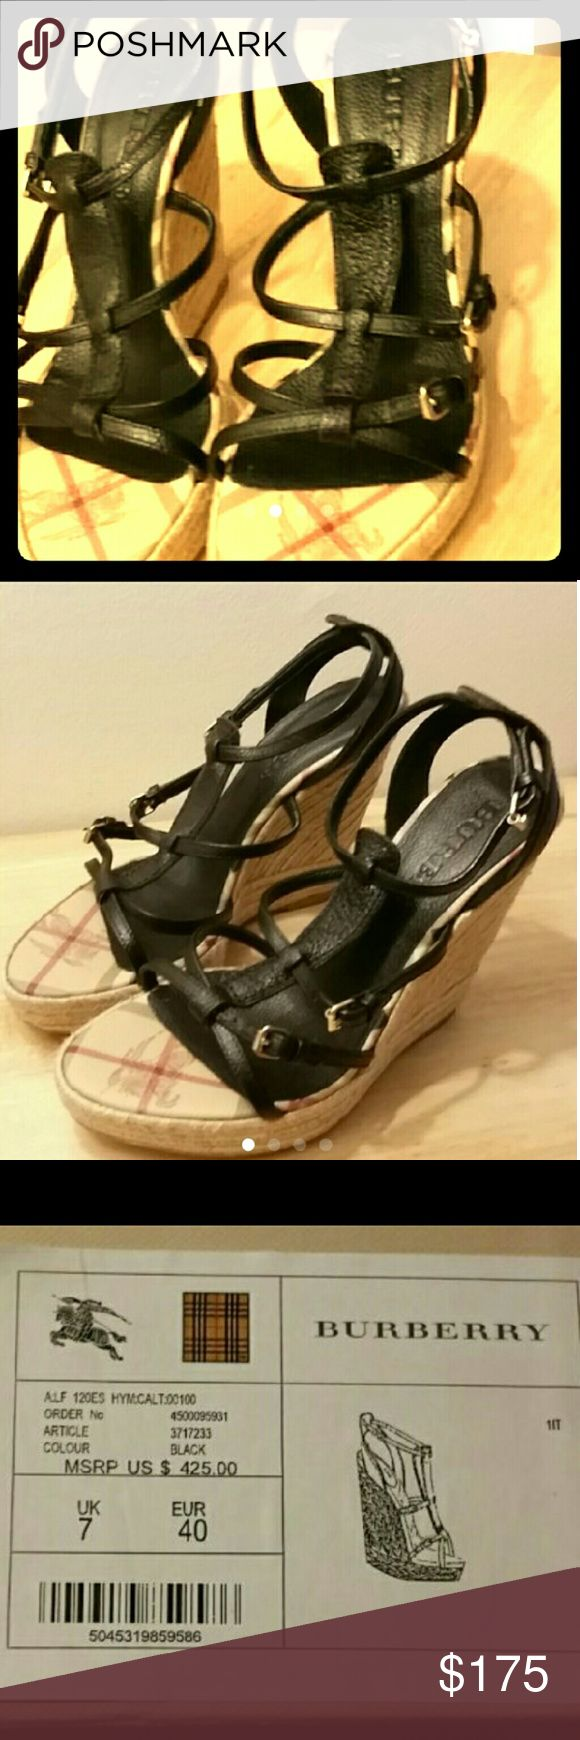 Burberry Black Leather Wedges Size 40 Burberry Shoes Wedges